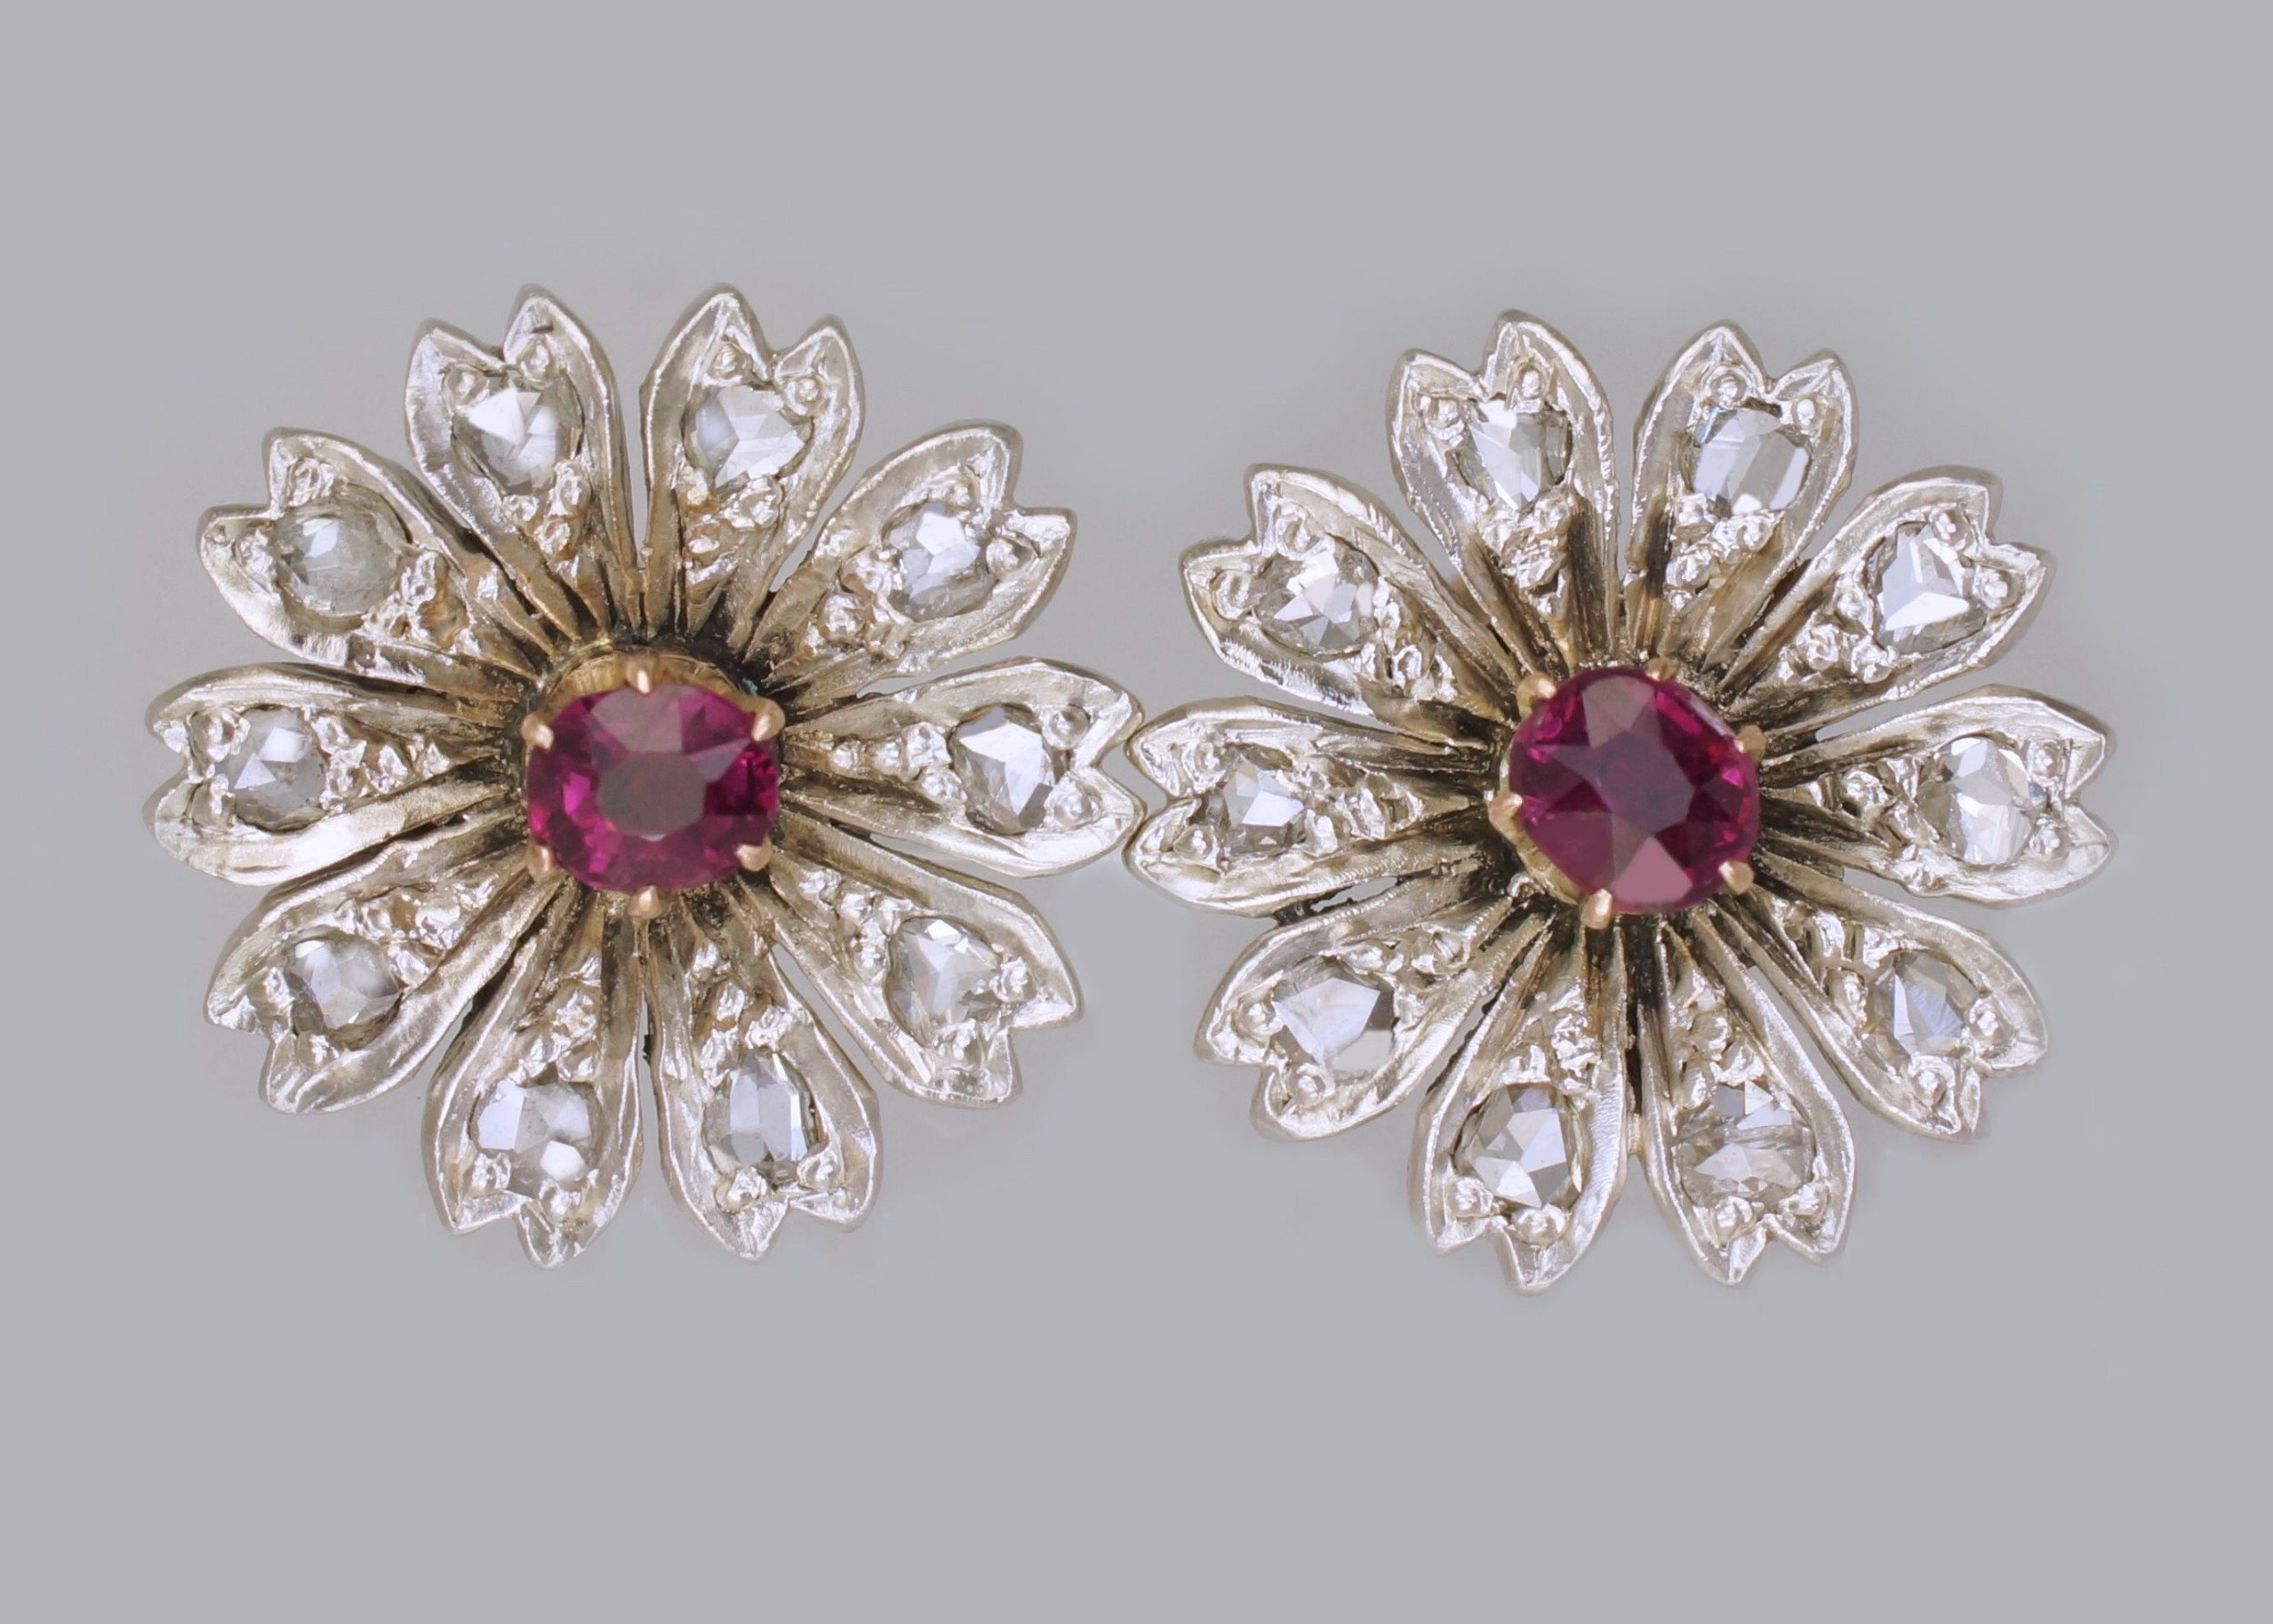 antique ruby rose cut diamond 9ct gold stud flower edwardian earrings circa 1910